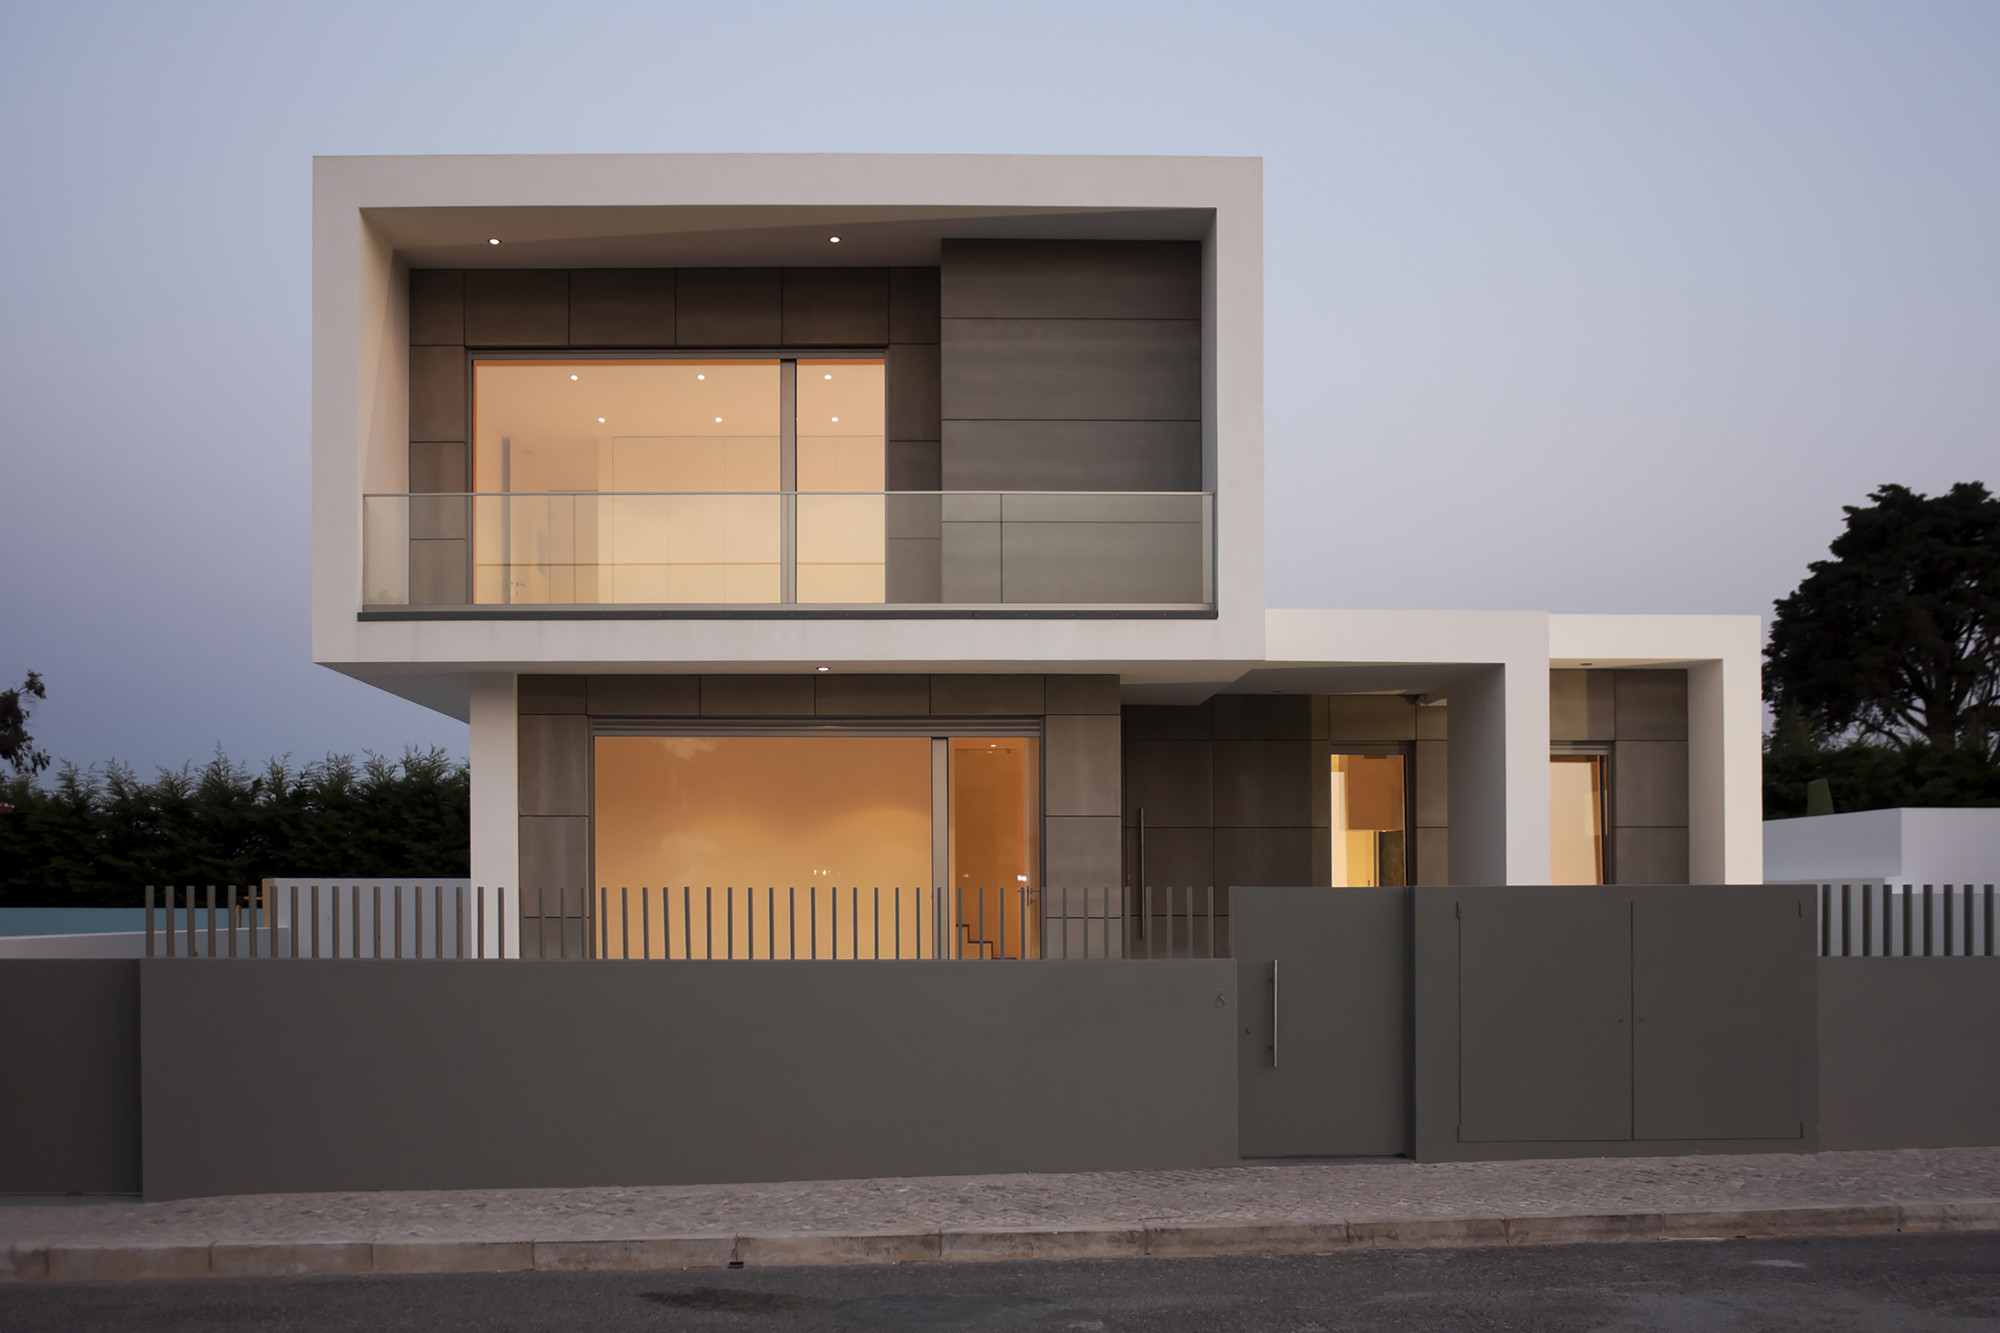 Paulo rolo house inspazo arquitectura archdaily for Arquitectura moderna casas